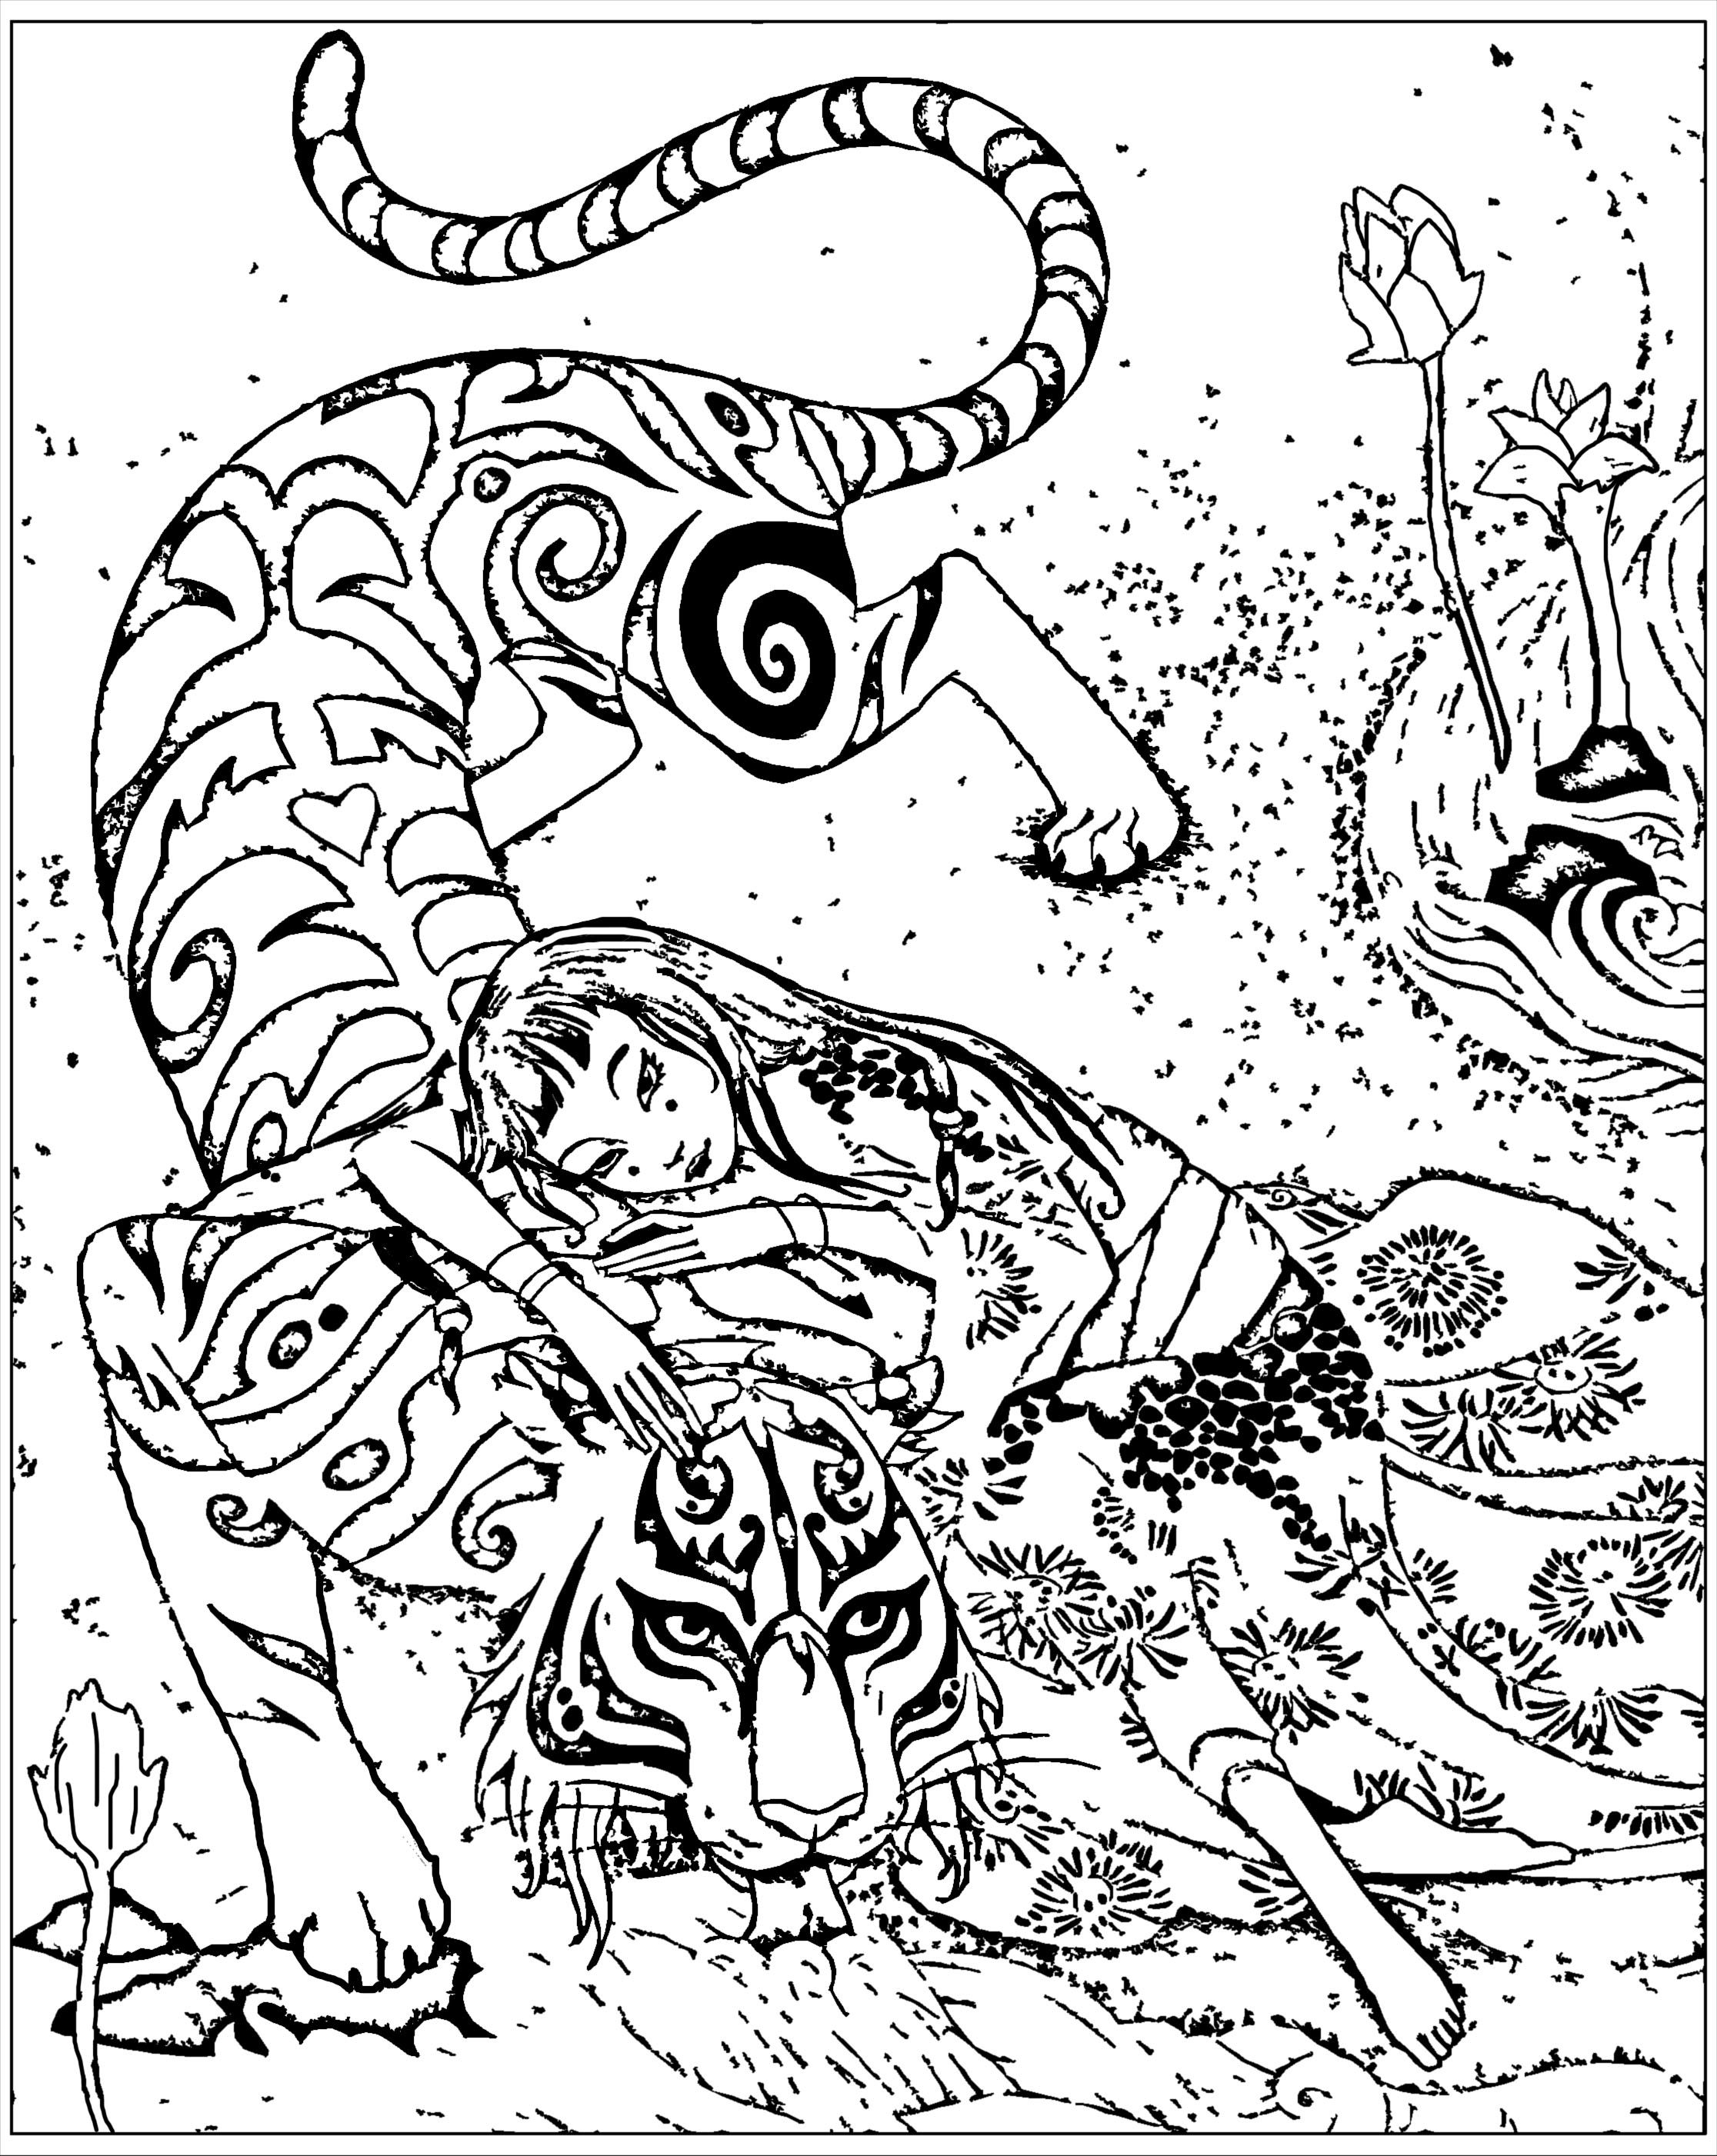 Free coloring pages tiger - Free Coloring Page Coloring Adult Inspired By Book Tiger Devoted